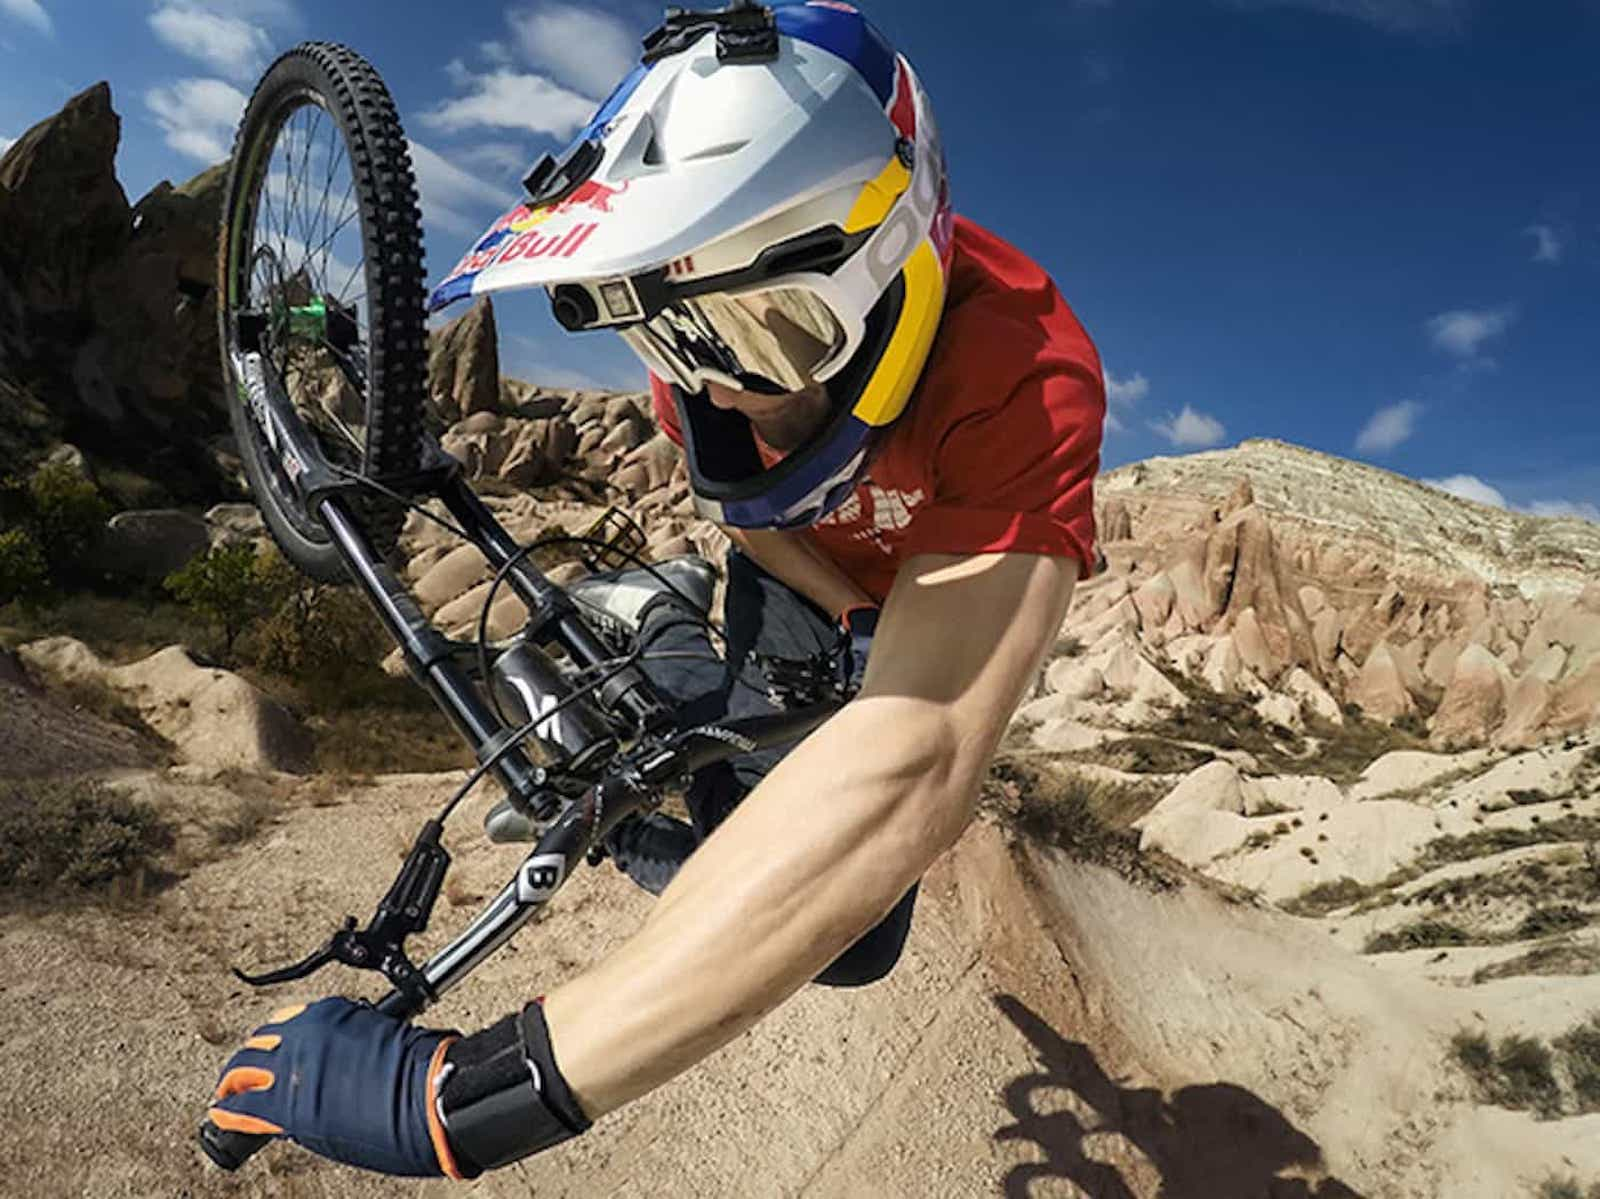 How to Make the Best GoPro Videos to Build Your Brand